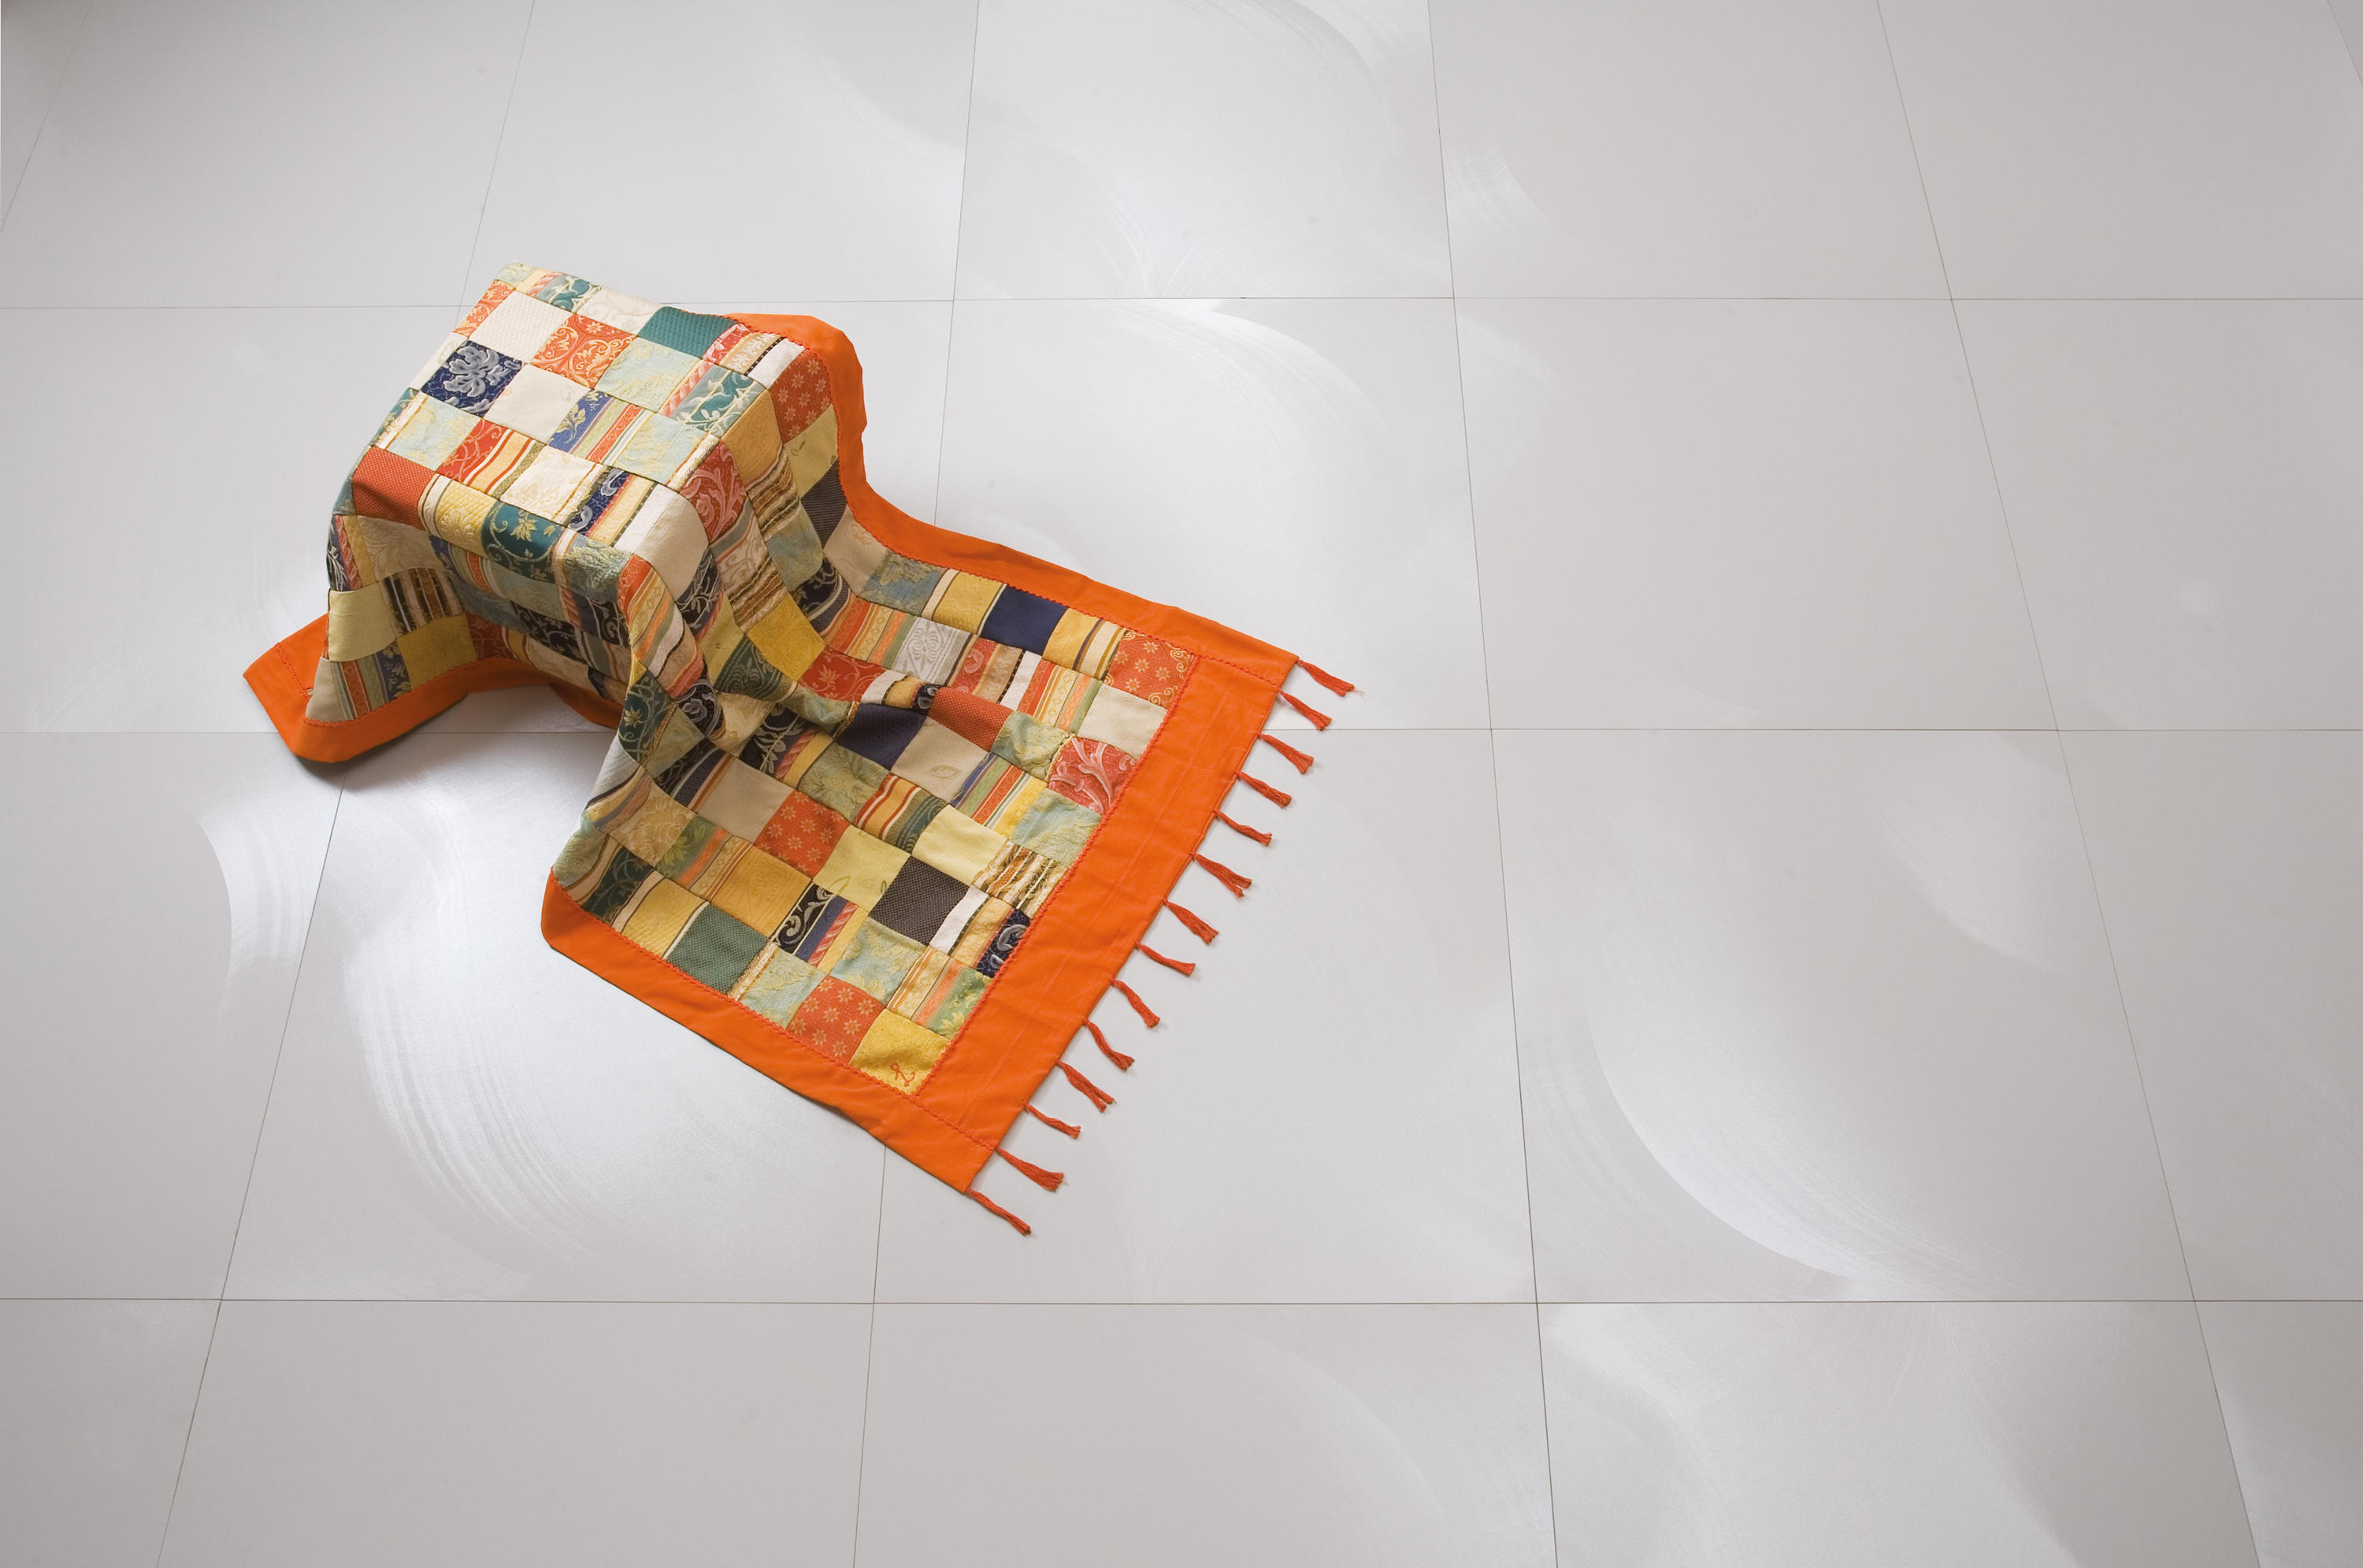 Ative Tiles For Walls - Cintinel.com